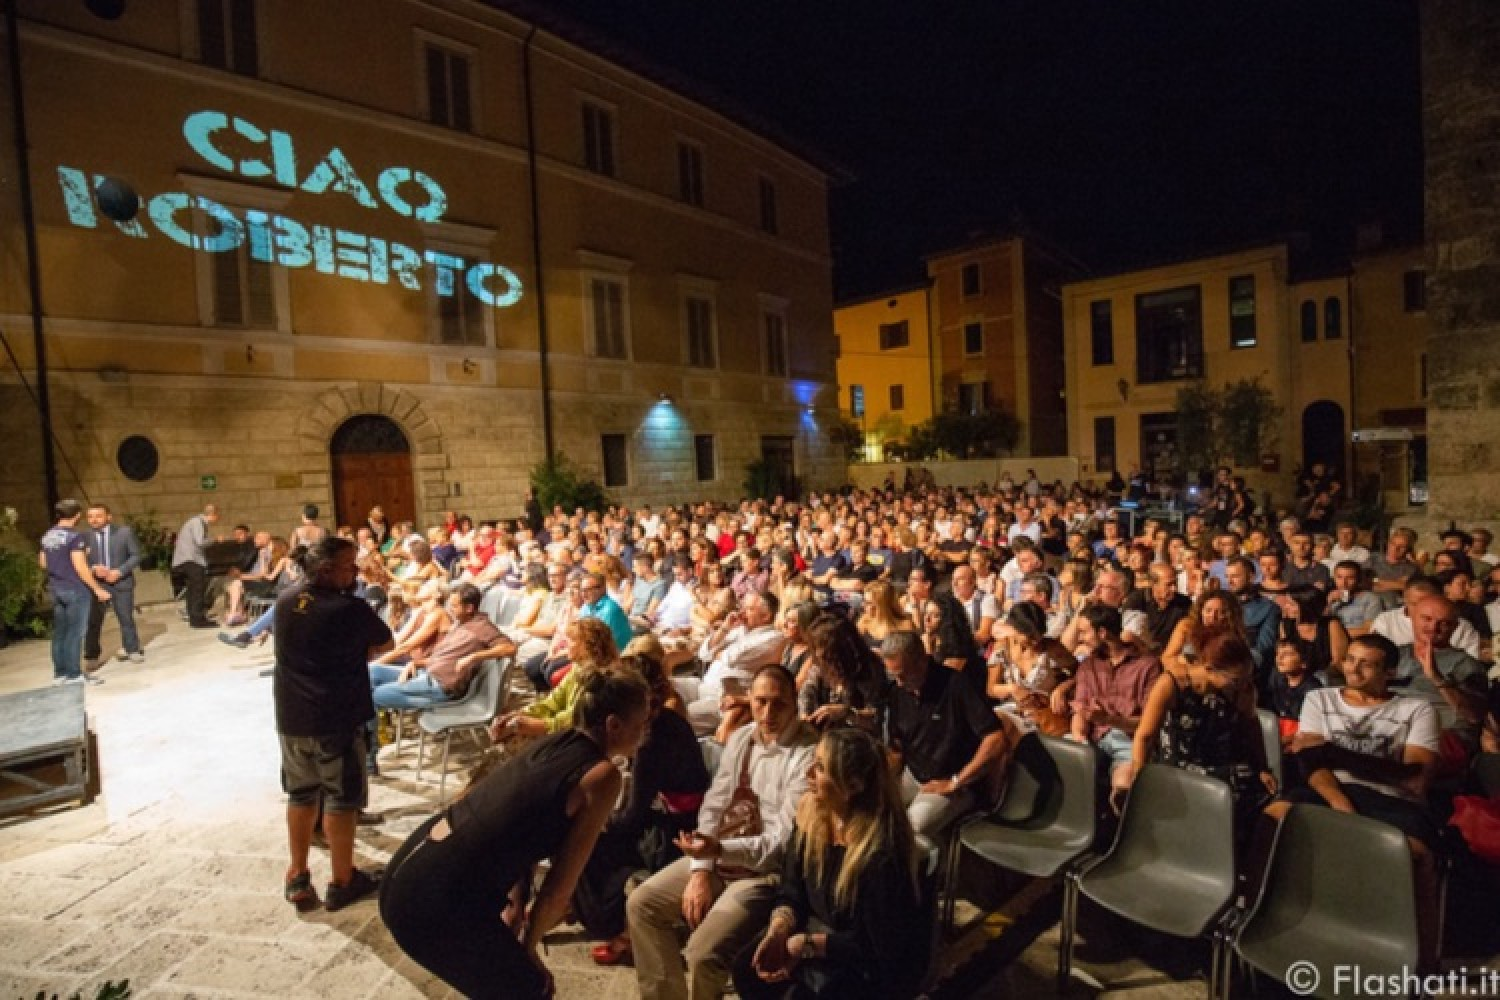 Tra applausi e sold out si è concluso il Festival Orizzonti